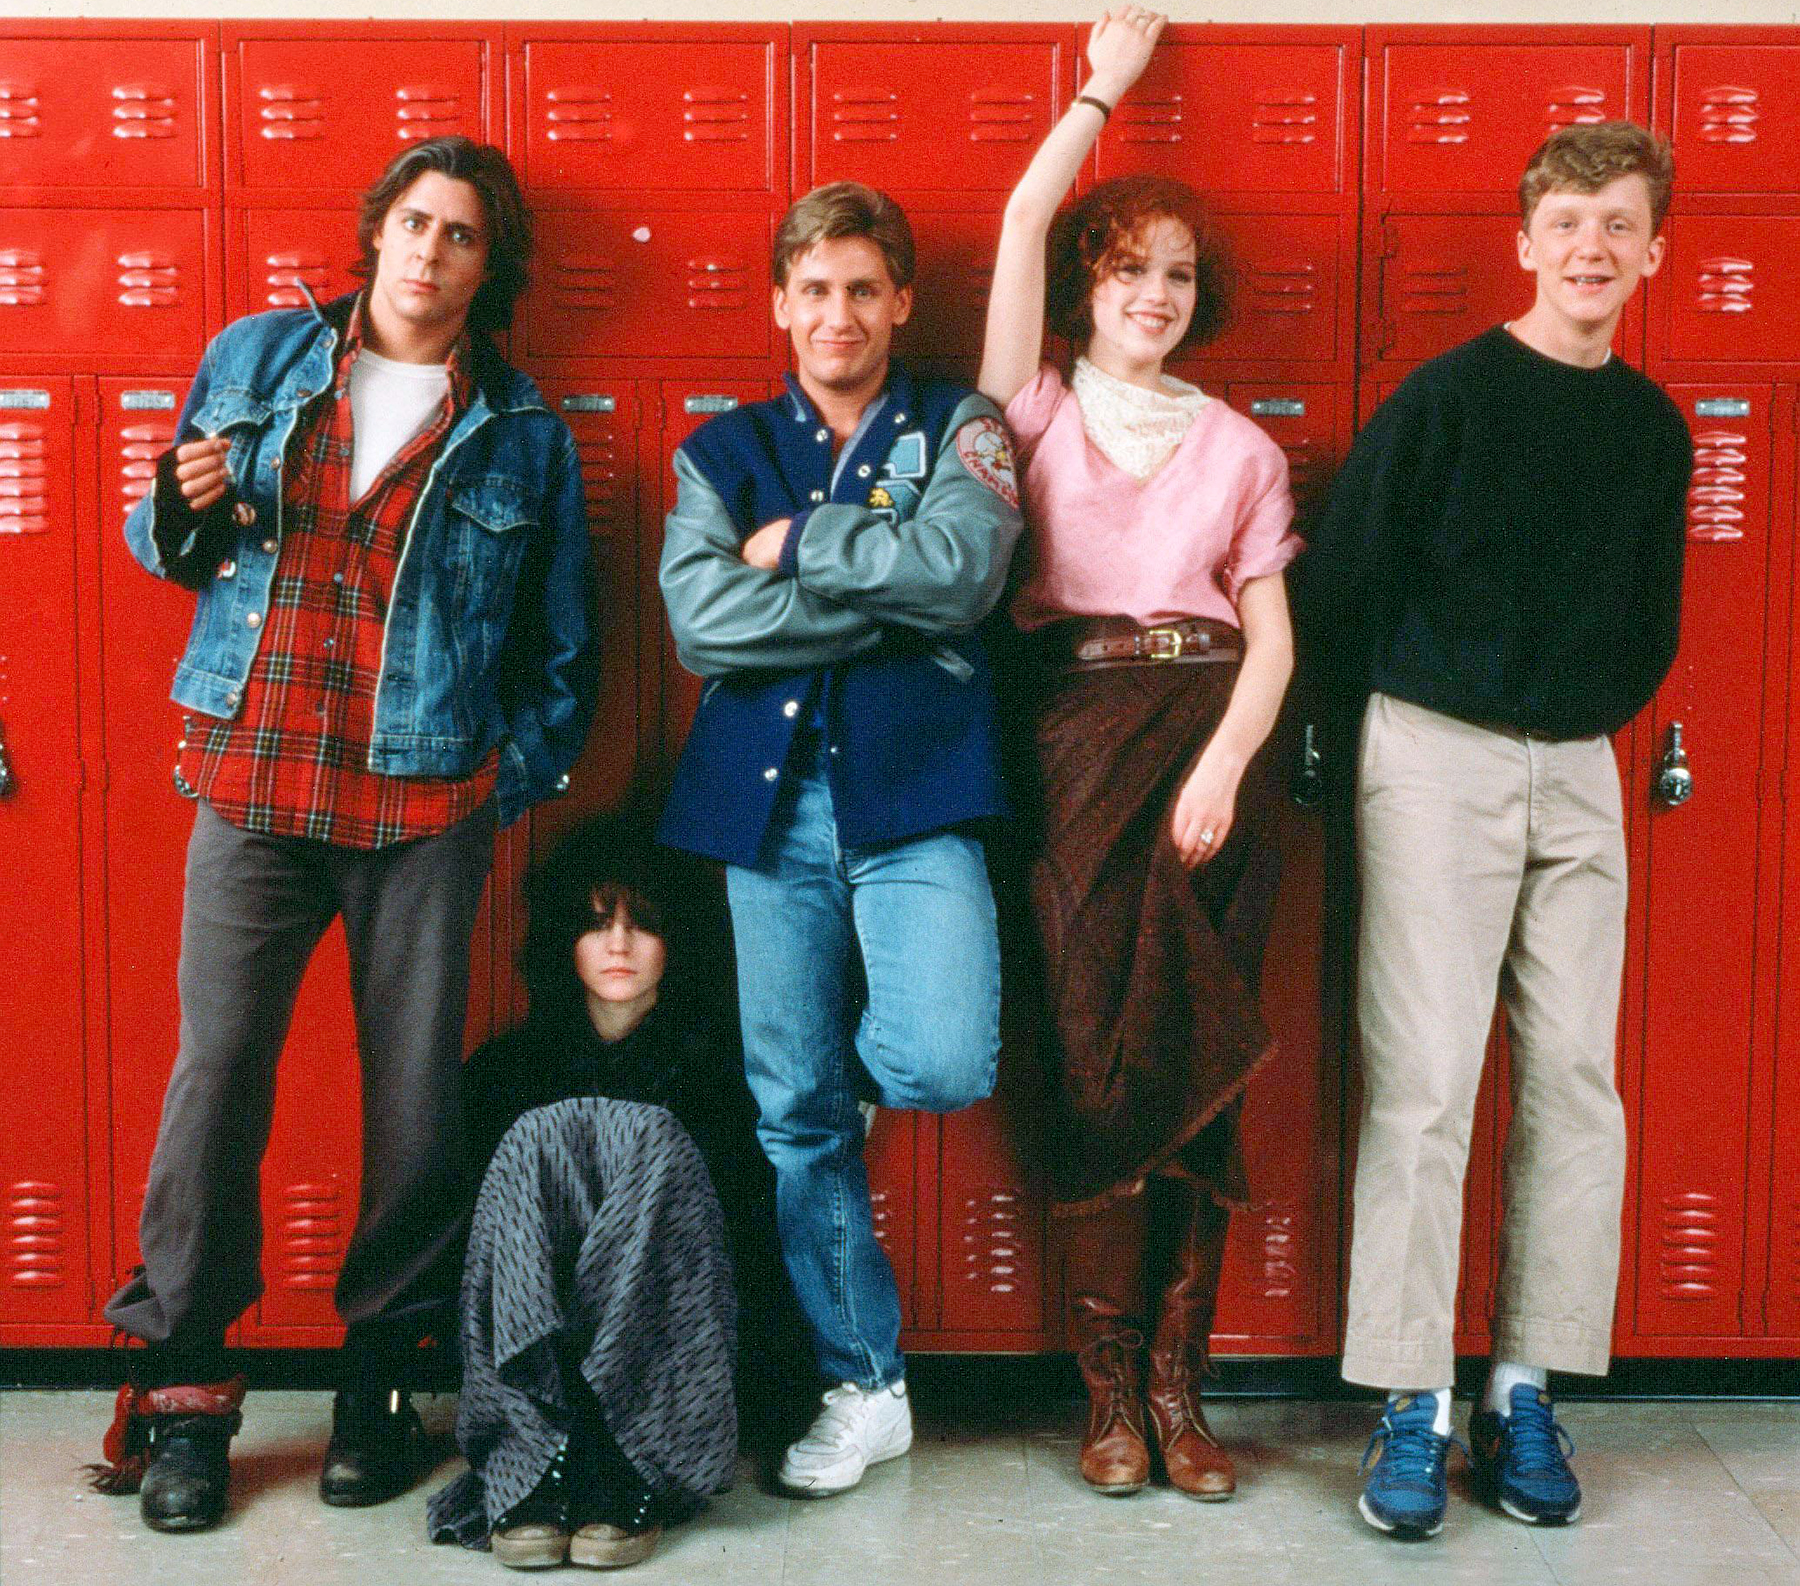 an analysis of the breakfast club The social psychology of the breakfast club: social psychology is a scientific concept that seeks to explain how the thoughts, feelings, and behaviors of individuals are influenced by the presence of others (alleydogcom, 2004.